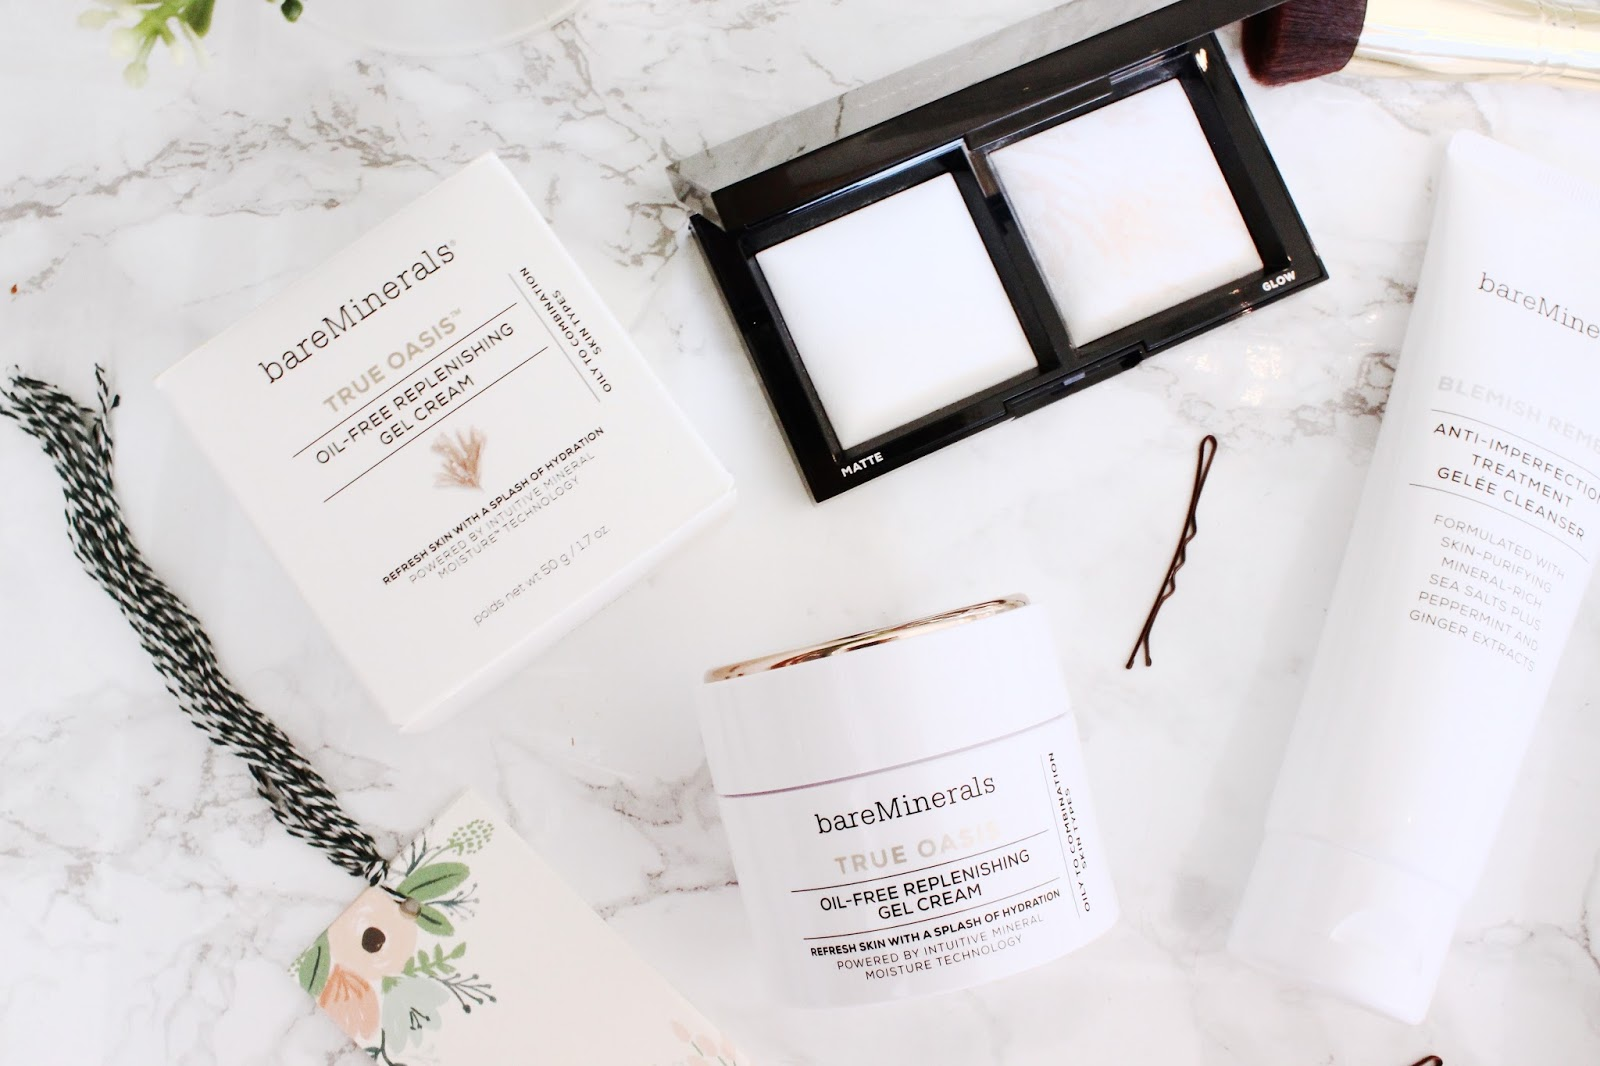 BareMinerals Powder Duo